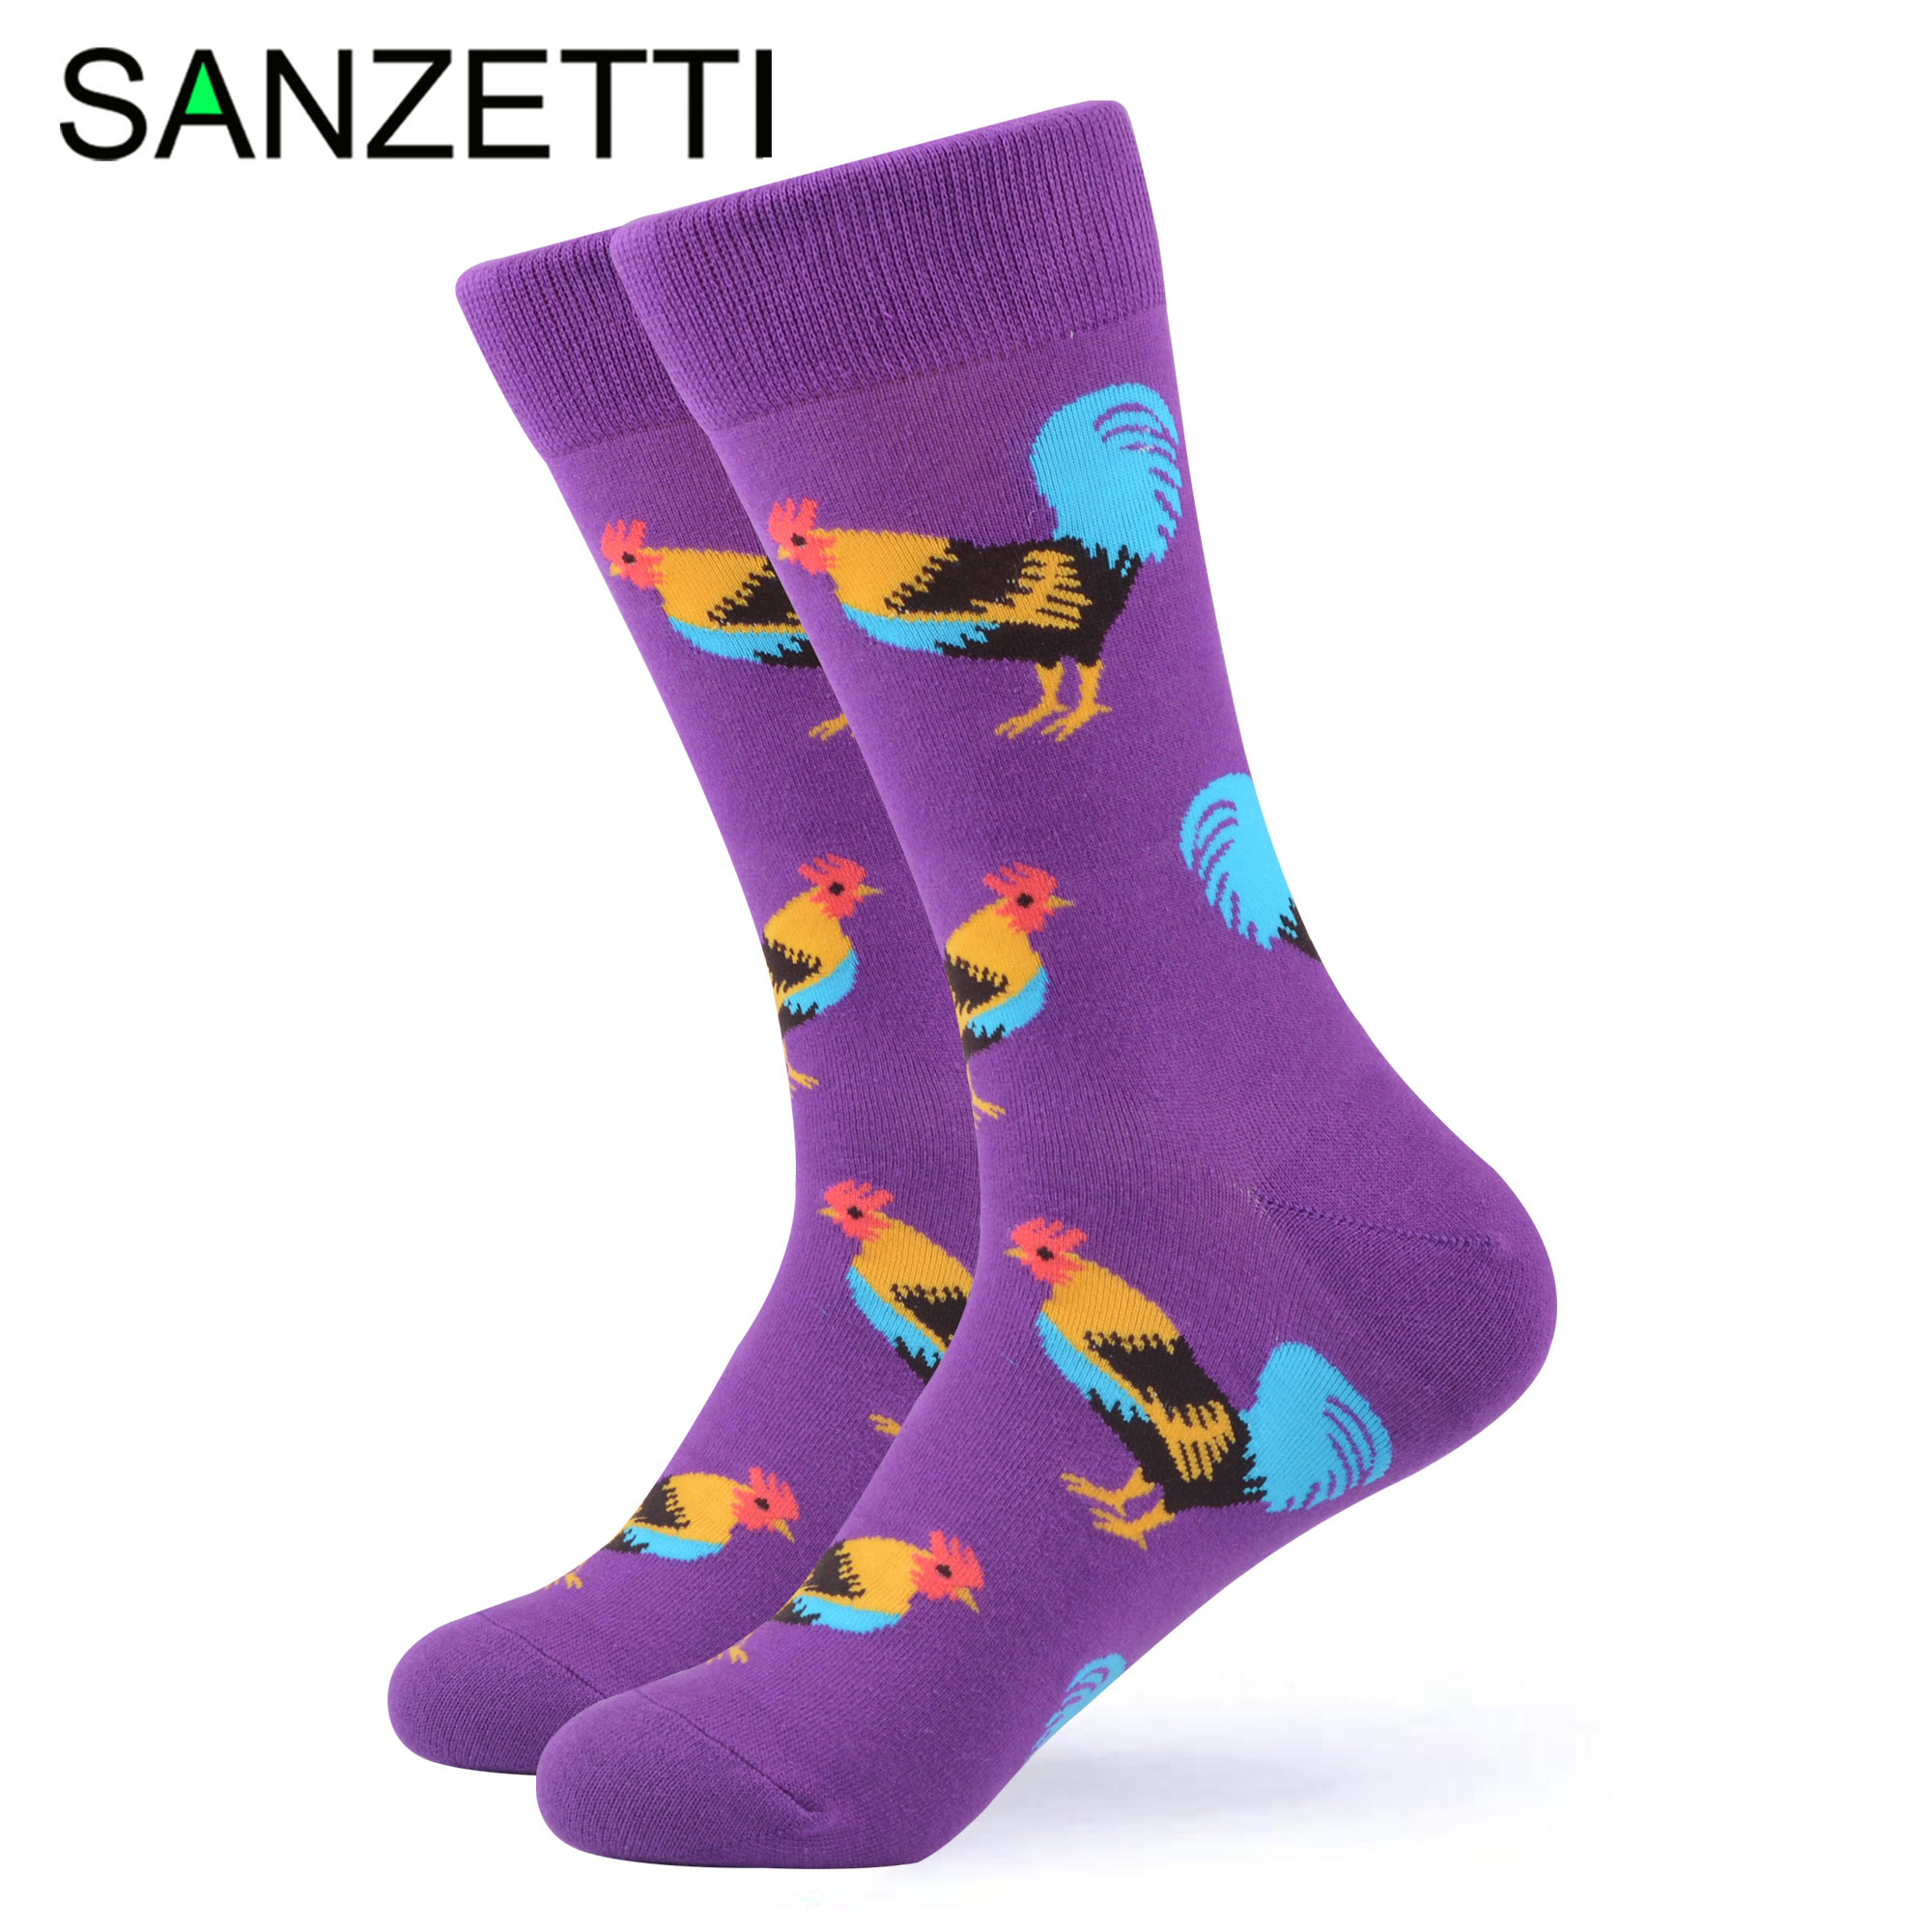 SANZETTI 1 Pair Colorful Bright Women Socks Novelty Combed Cotton Cute Party Cake Donuts Pretty Gifts Wedding Dress Happy Socks